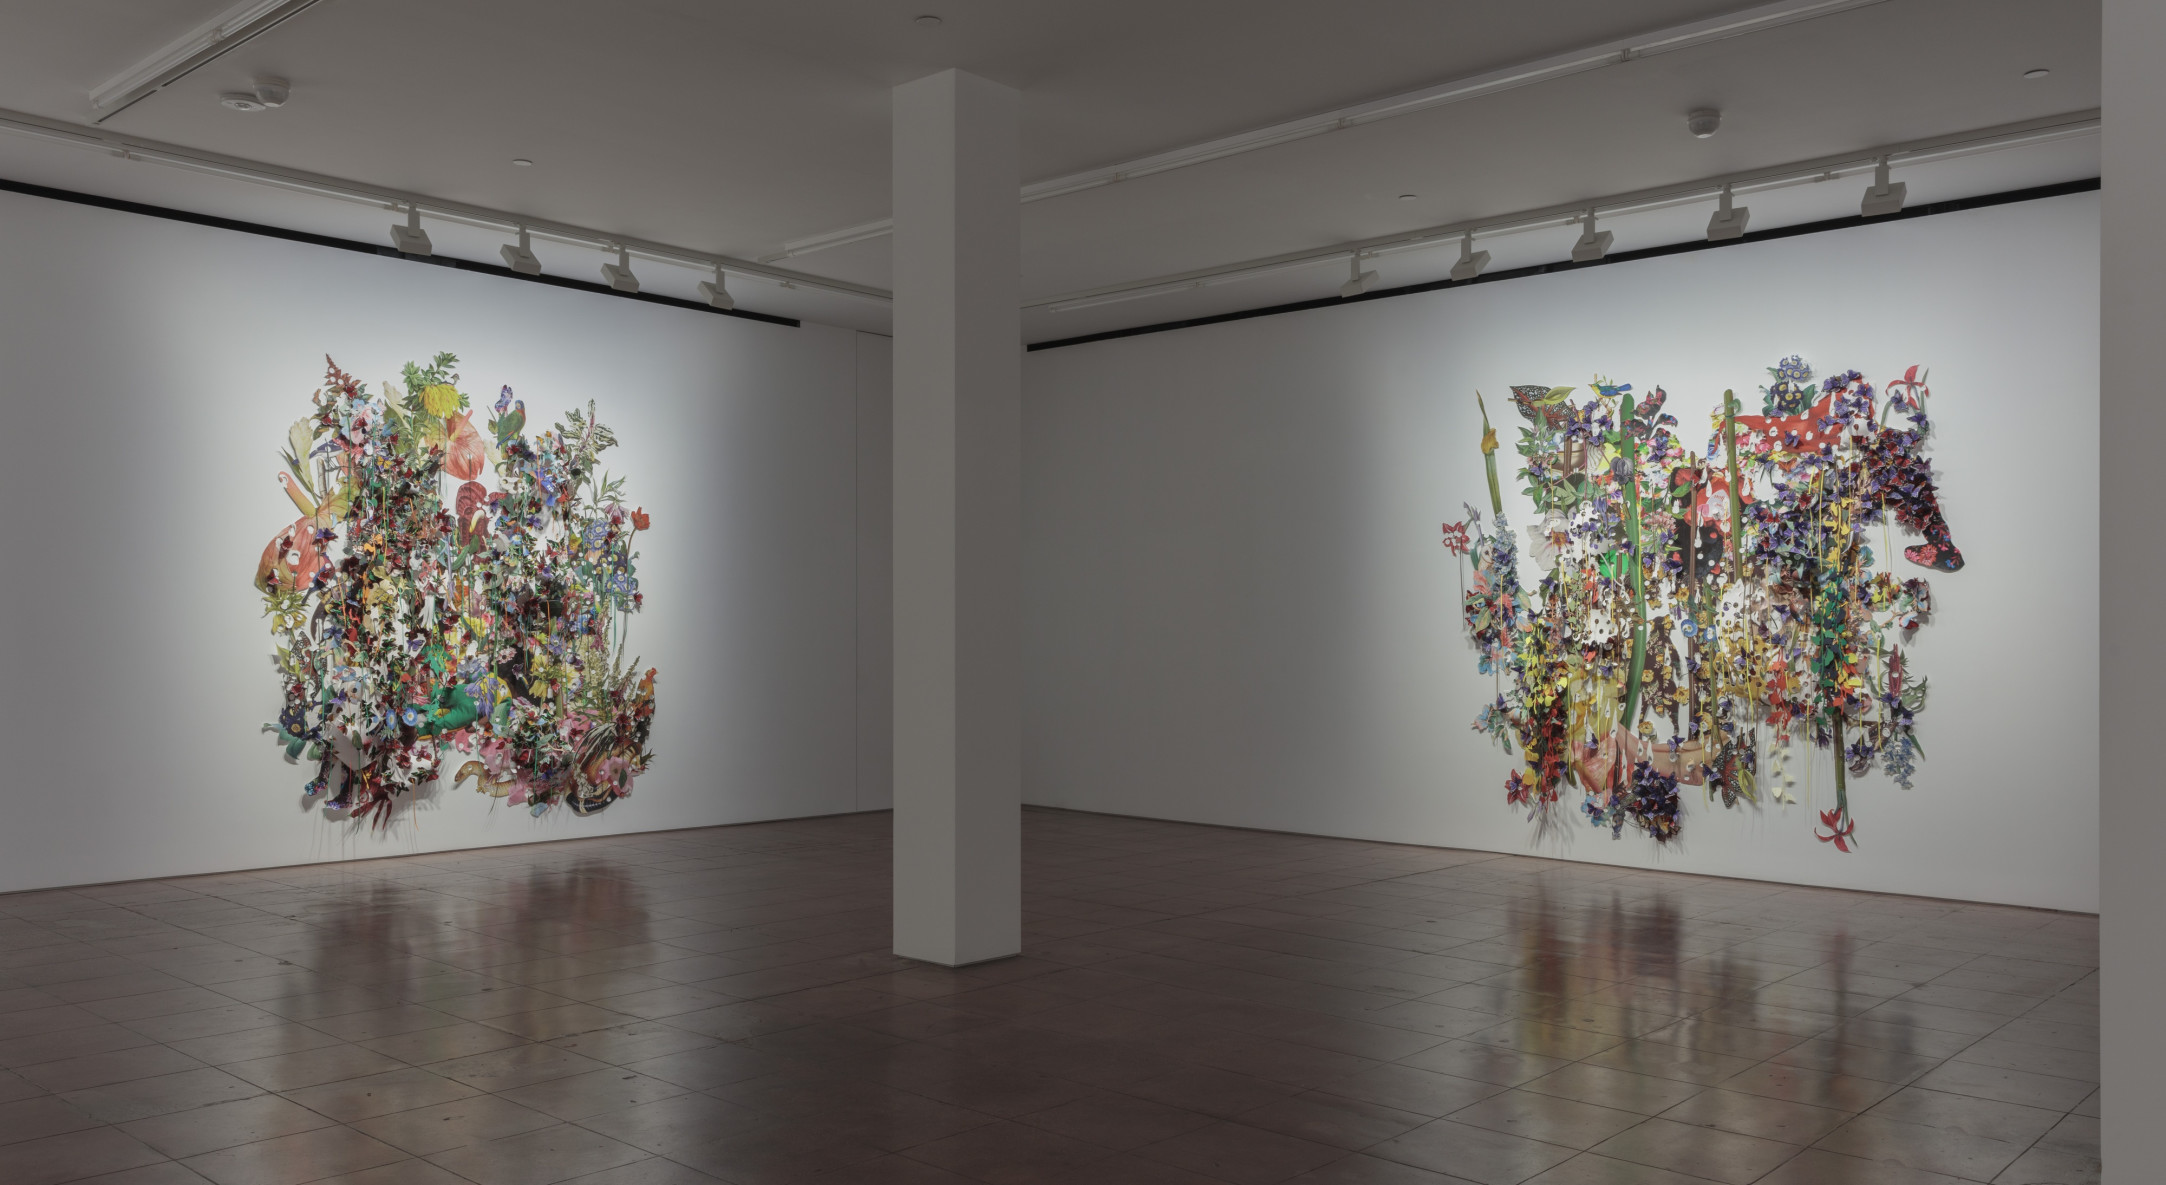 Installation view of Ebony G. Patterson, ... to dig between the cuts, beneath the leaves, below the soil… at Hales New York